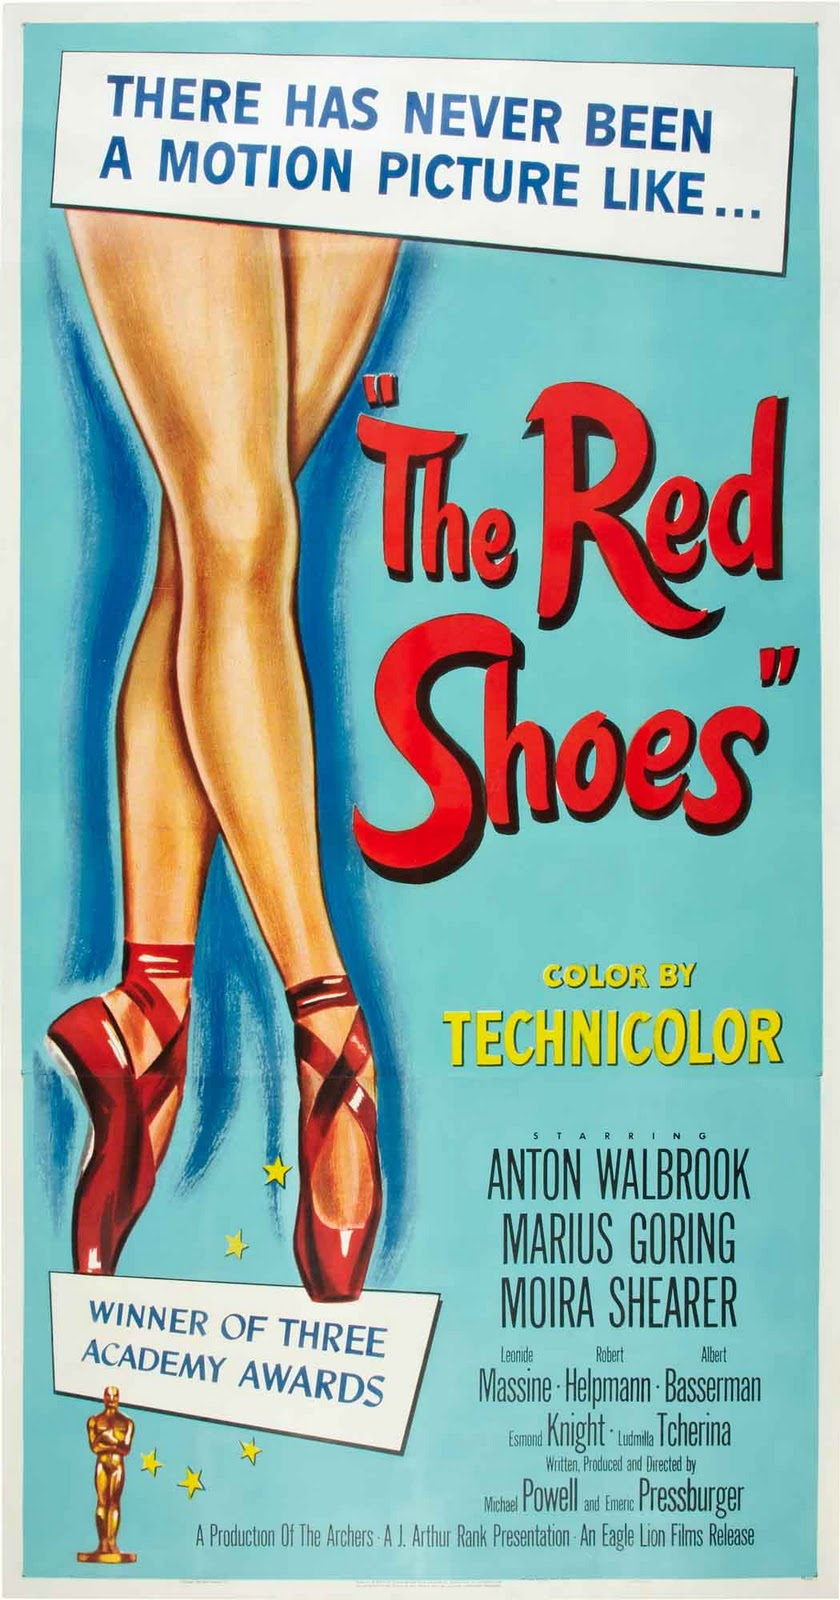 Poster of The Red Shoes